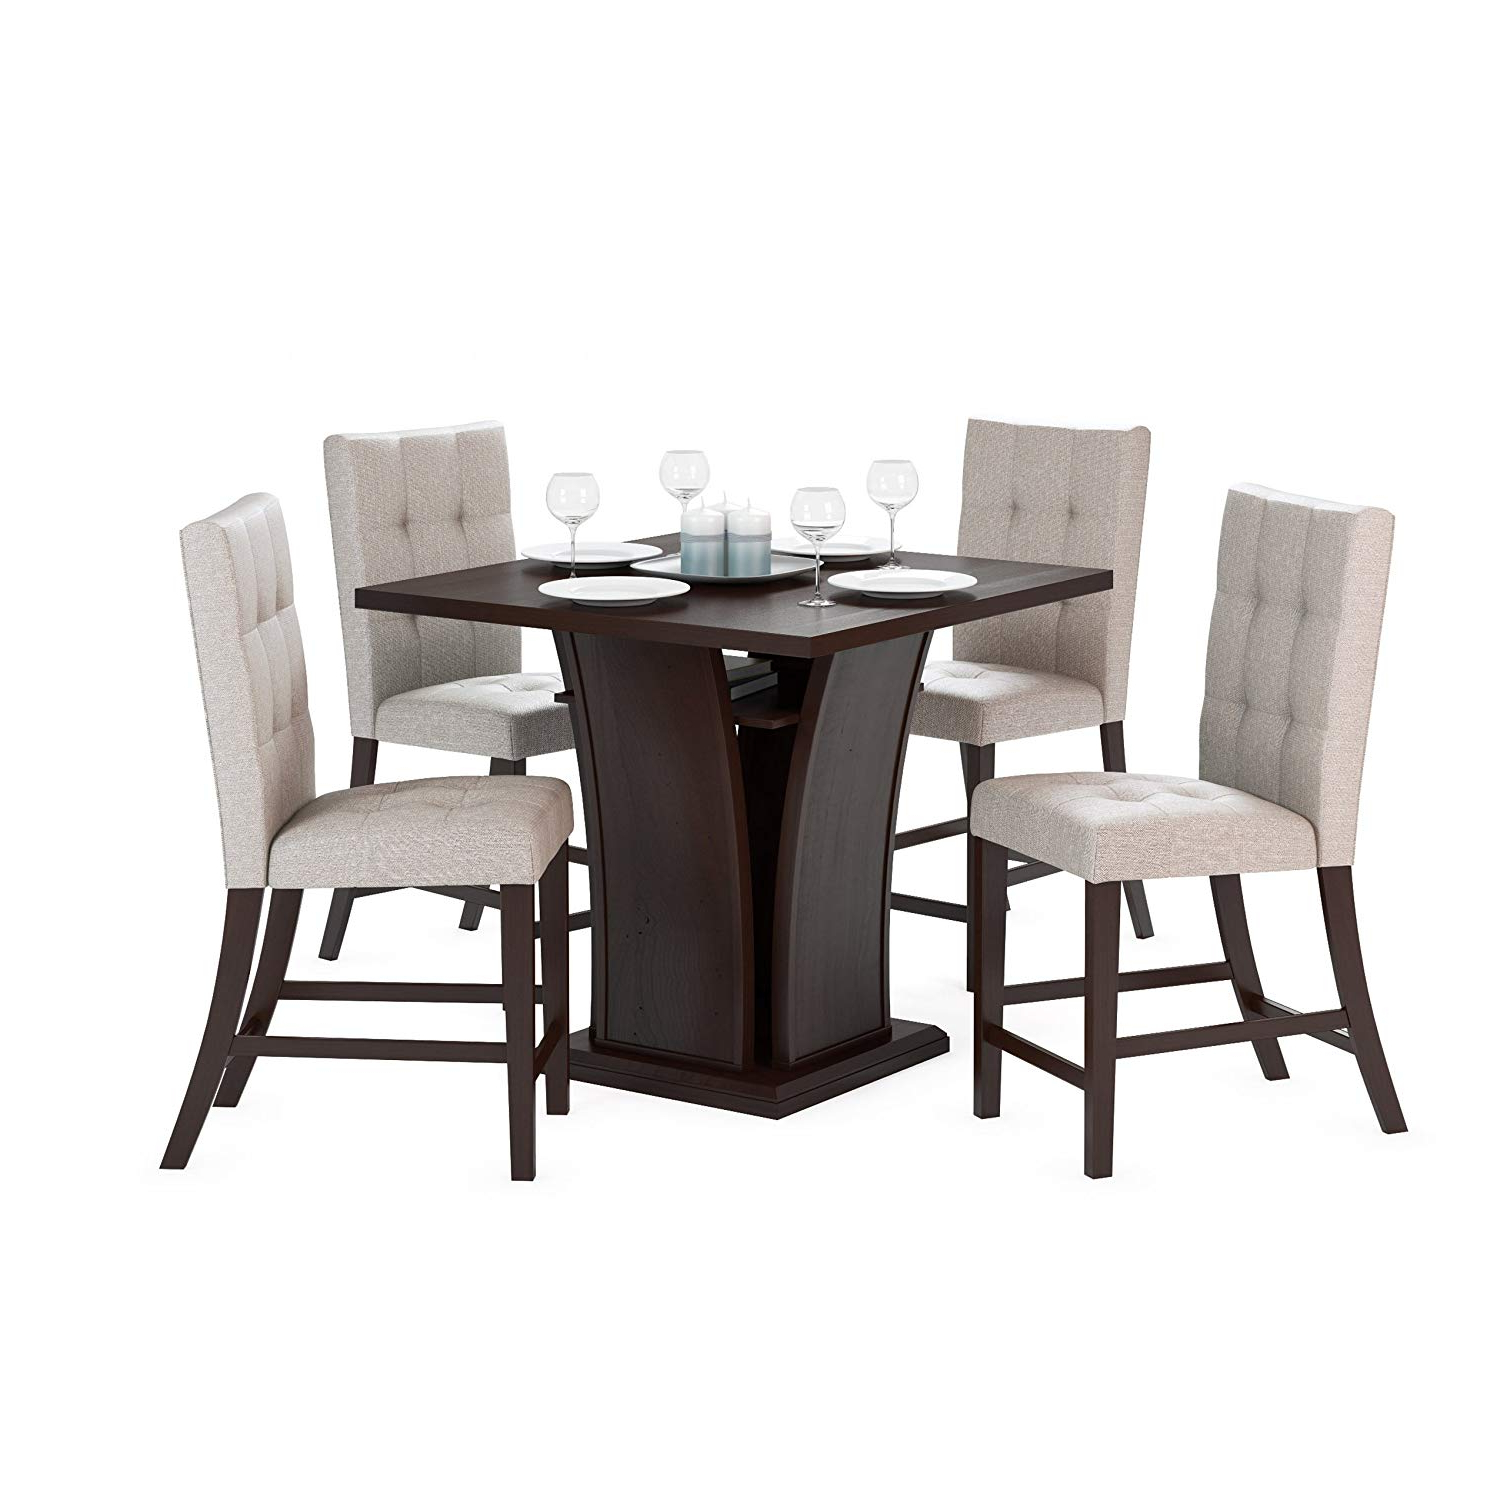 """Preferred Bistro Transitional 4 Seating Square Dining Tables Pertaining To Corliving Dwp 390 Z1 Bistro 5 Piece 36"""" Counter Height Cappuccino Wood Dining Set With Storage Shelf Tufted Platinum Sage Seats (View 6 of 24)"""